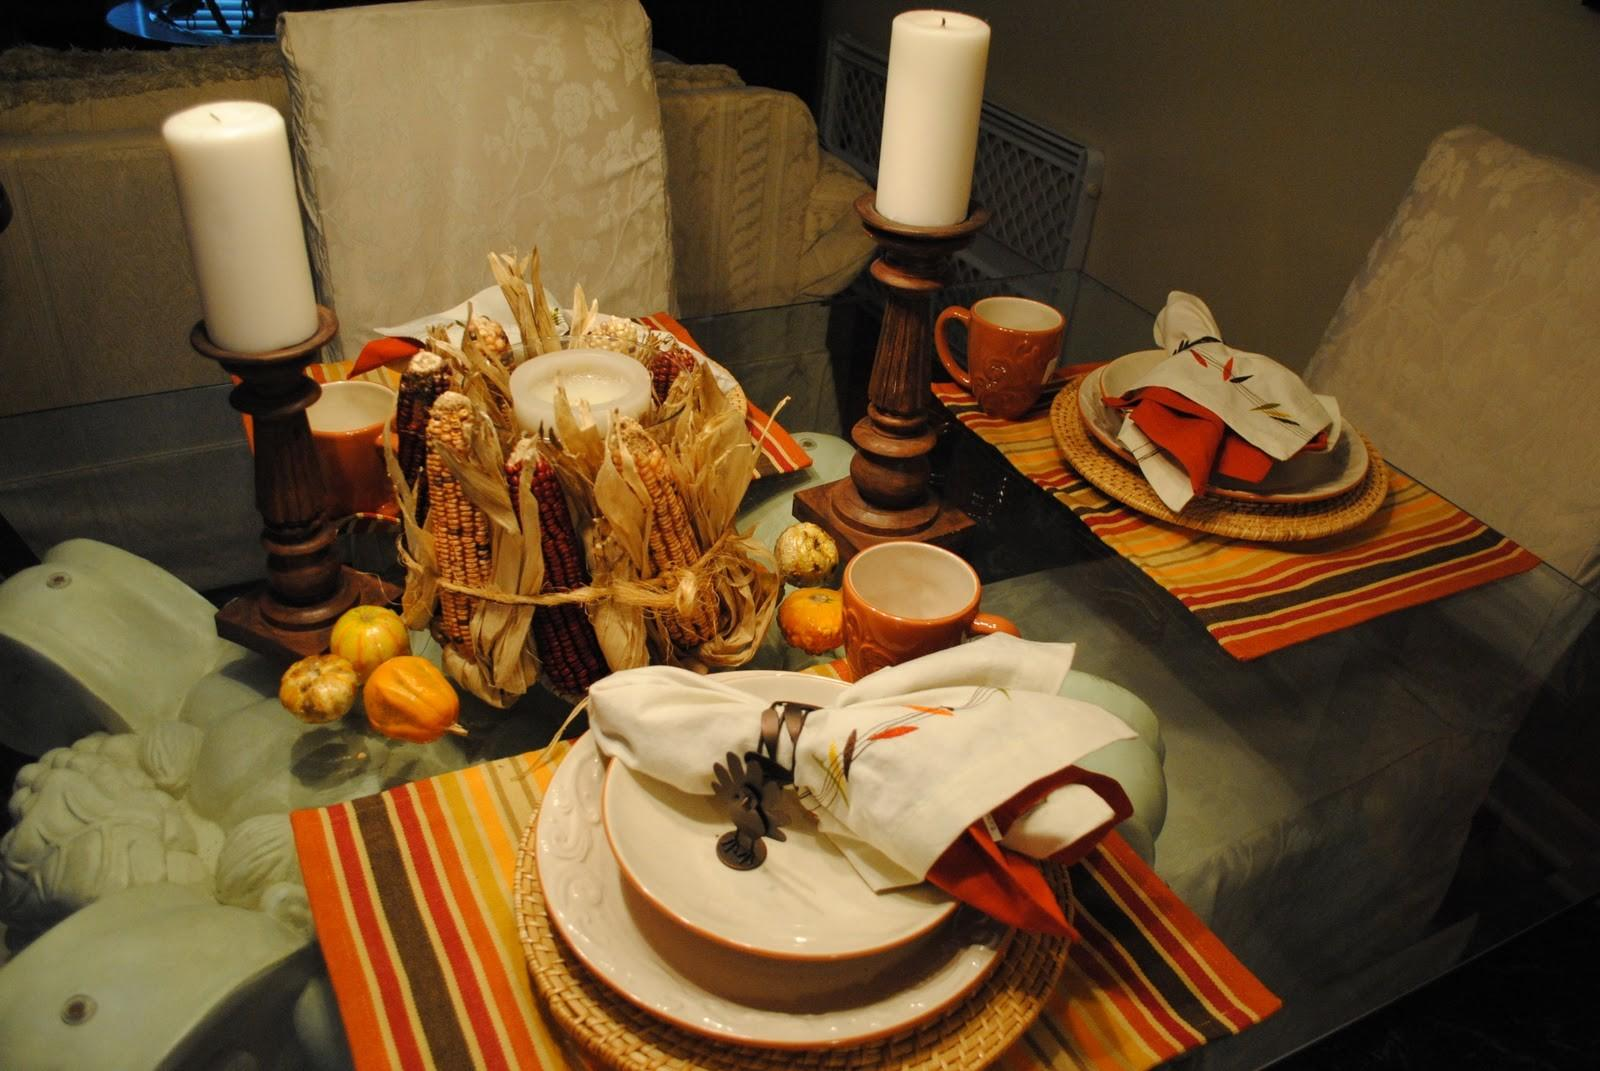 Decorations Thanksgiving Tablescape Candles